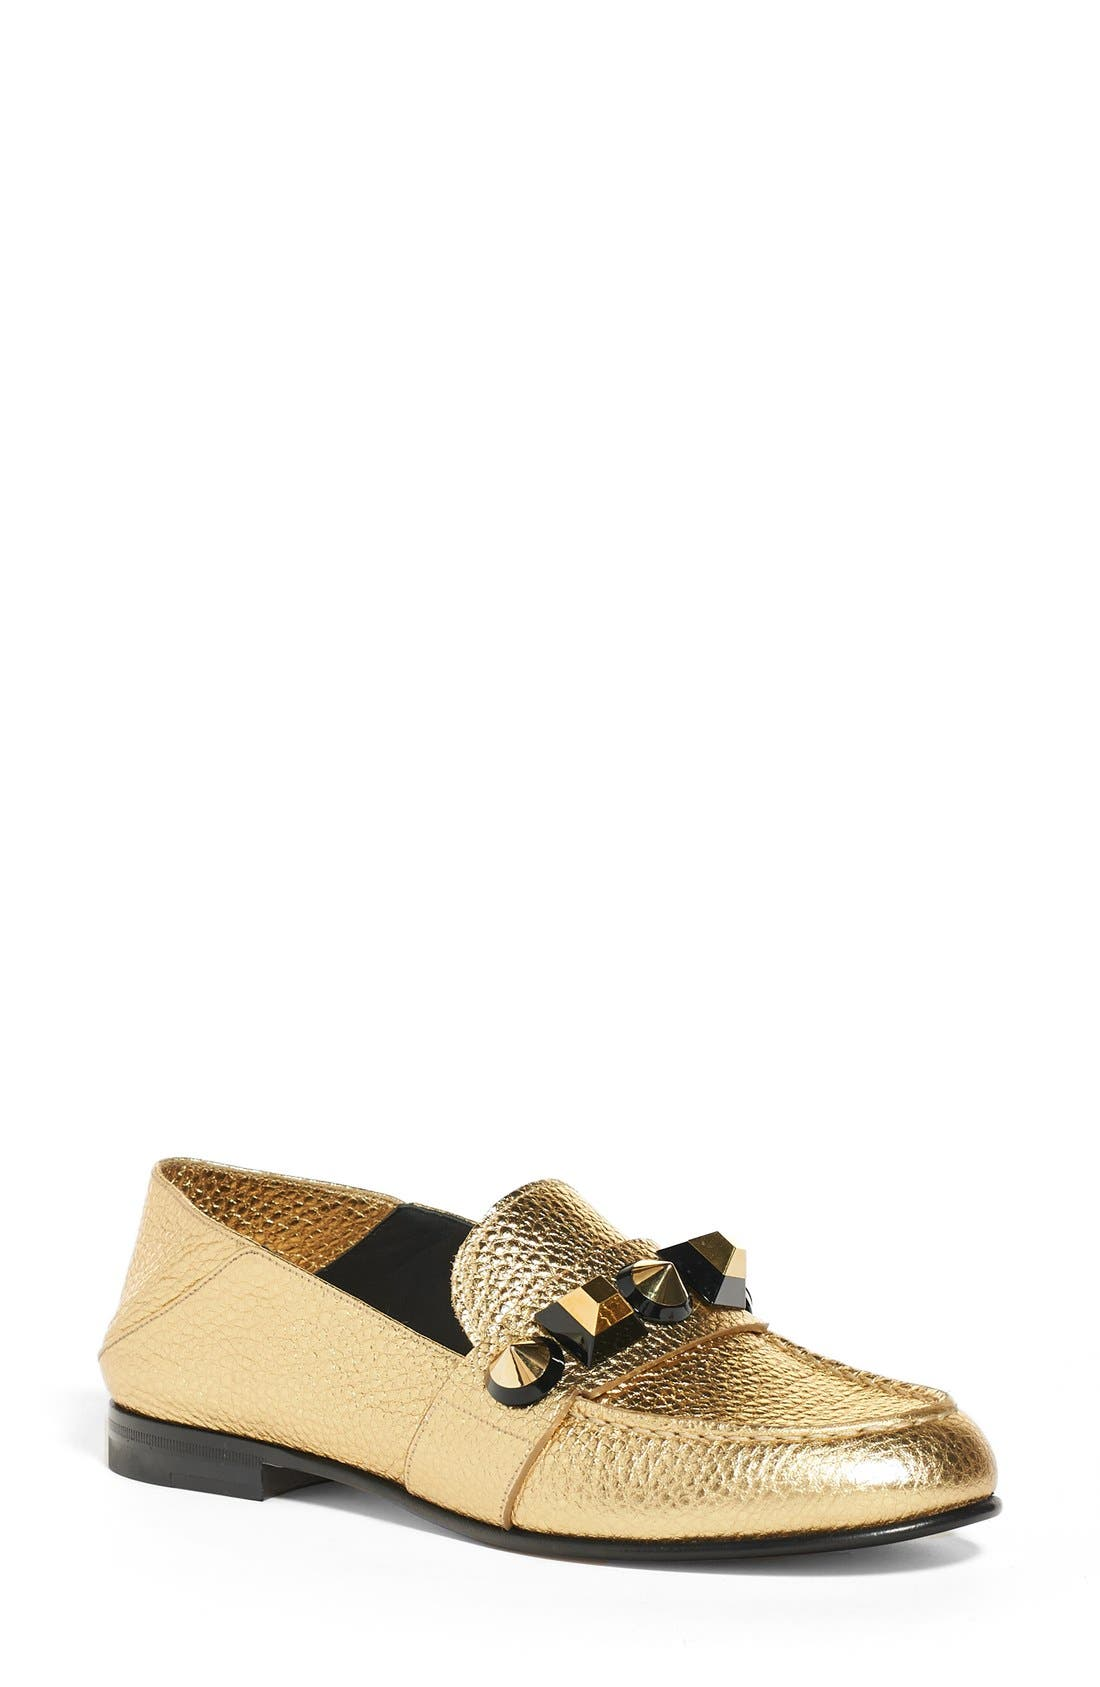 FENDI Convertible Moccasin